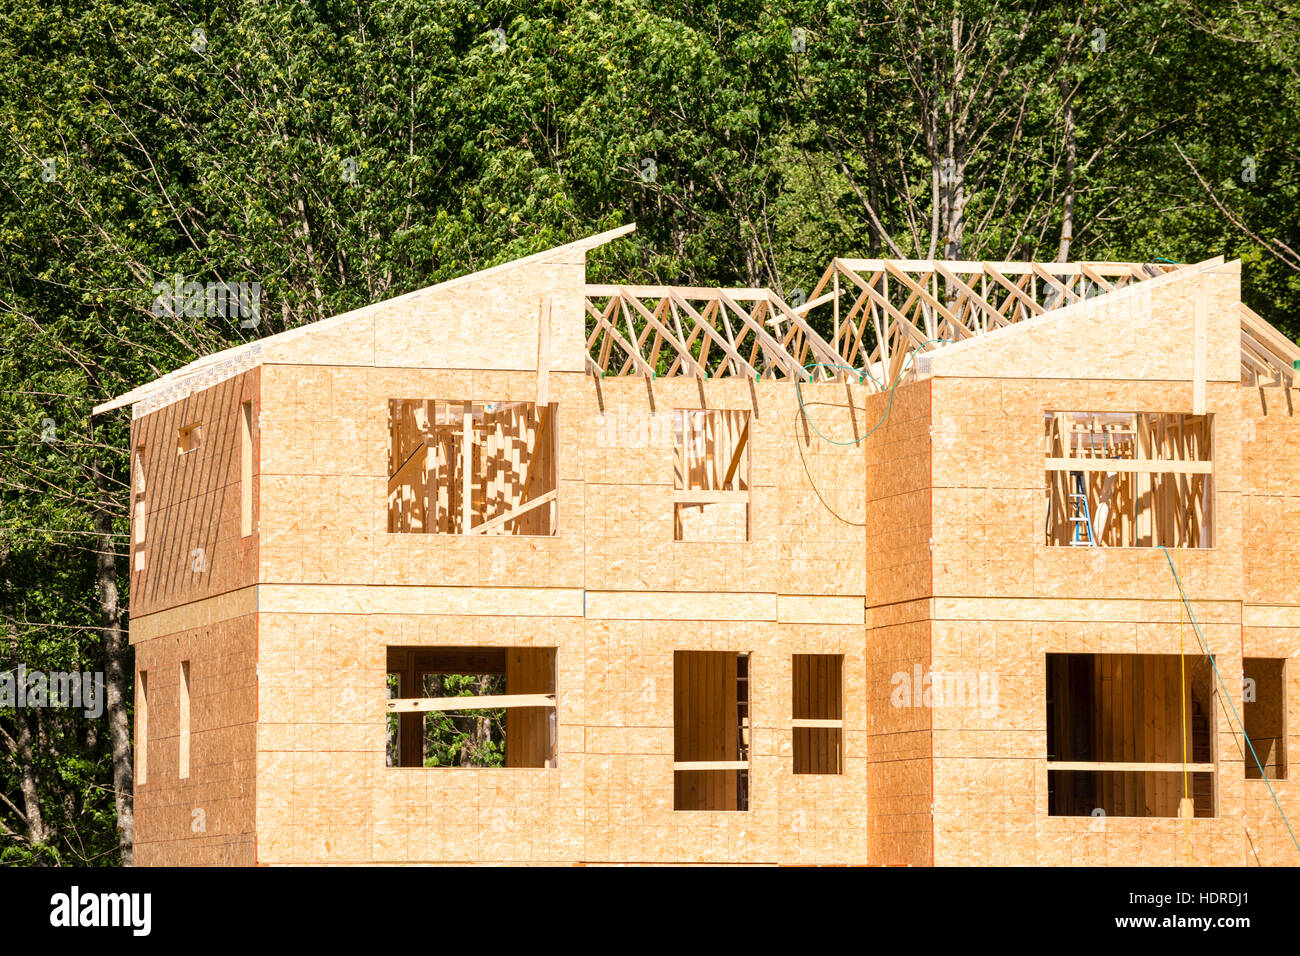 Wood Frame Apartment Housing Building Construction Industry - Stock Image